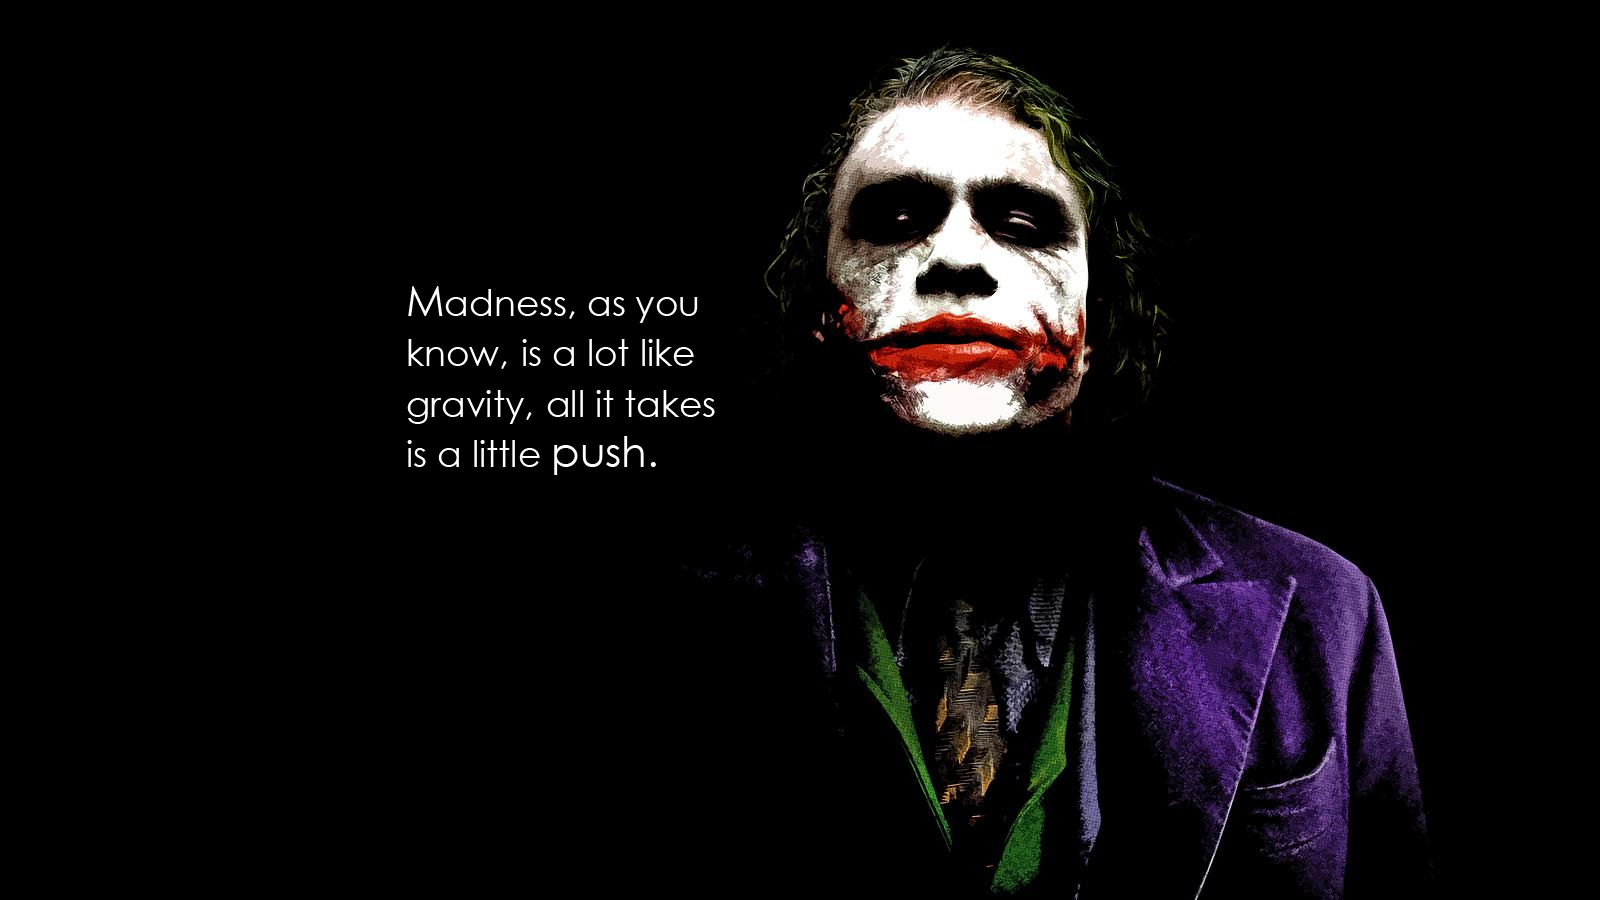 Joker Love Quotes : The Joker Quotes Heath Ledger. QuotesGram